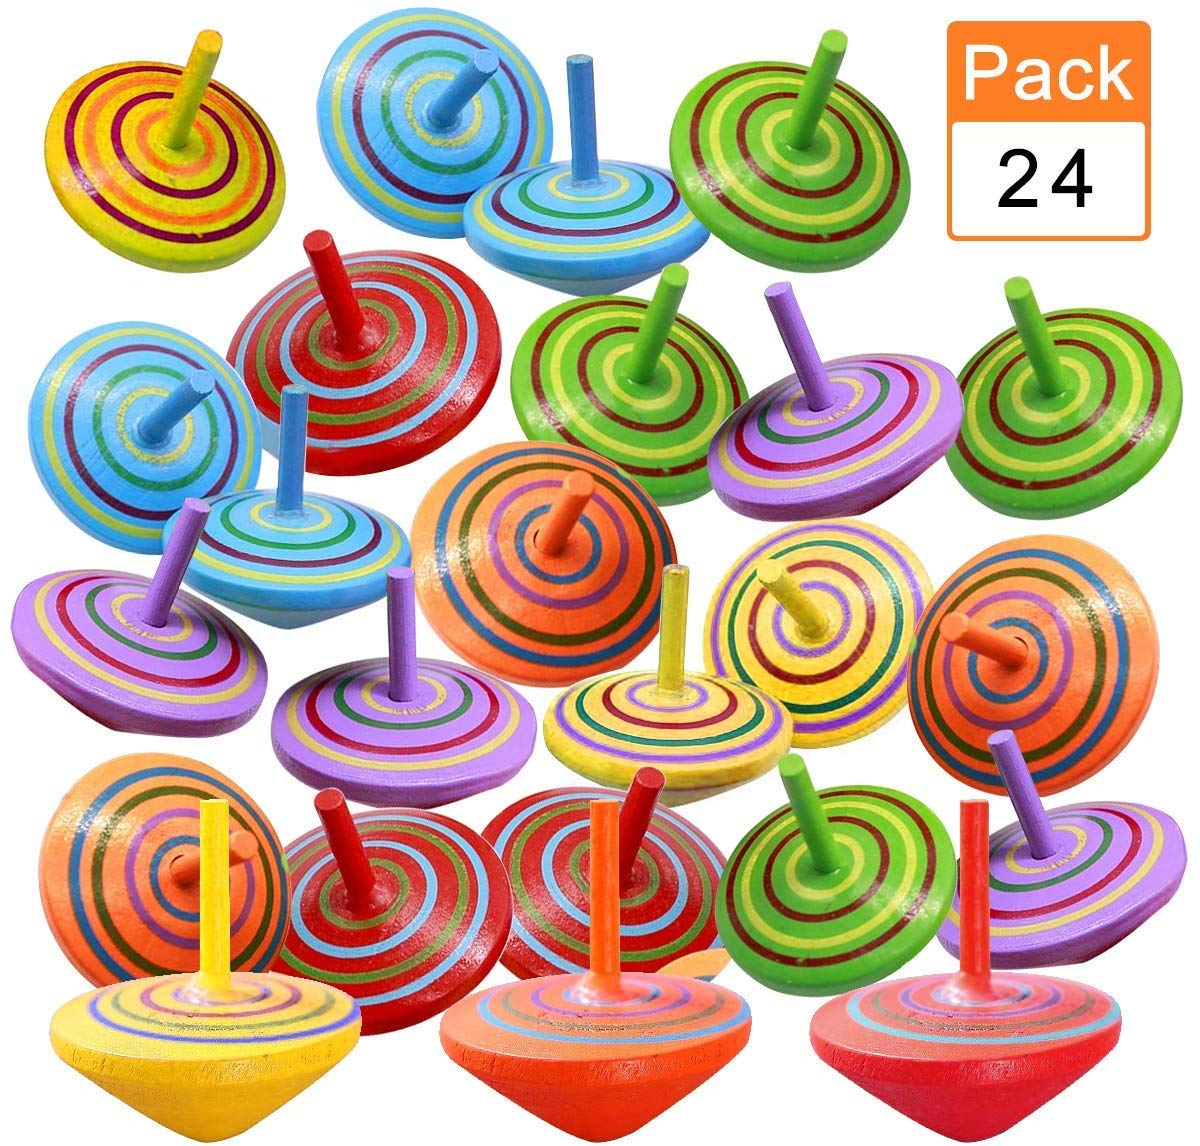 6 Colors ENCEEN 24PCS Spinning Tops Wooden Spin Top for Kids Party Bags Fillers